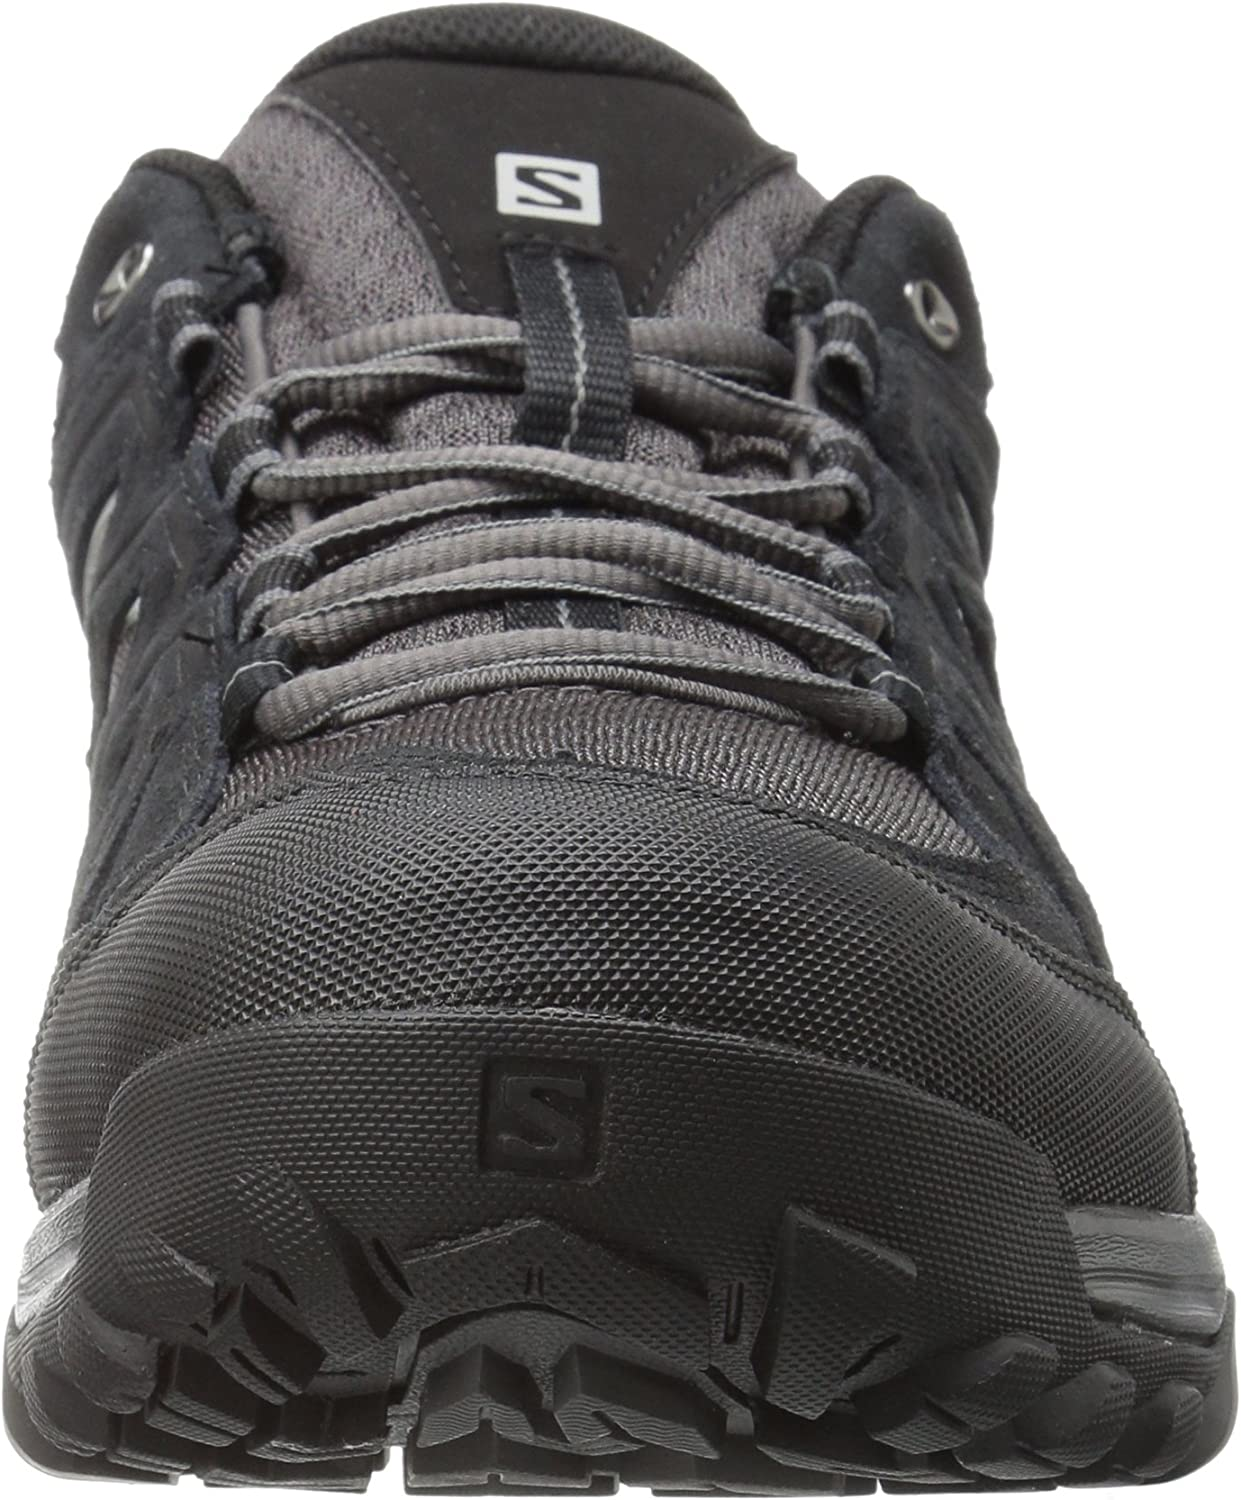 Salomon Herren EVASION 2 AERO Hiking und Multifunktionsschuhe, SynthetikTextil